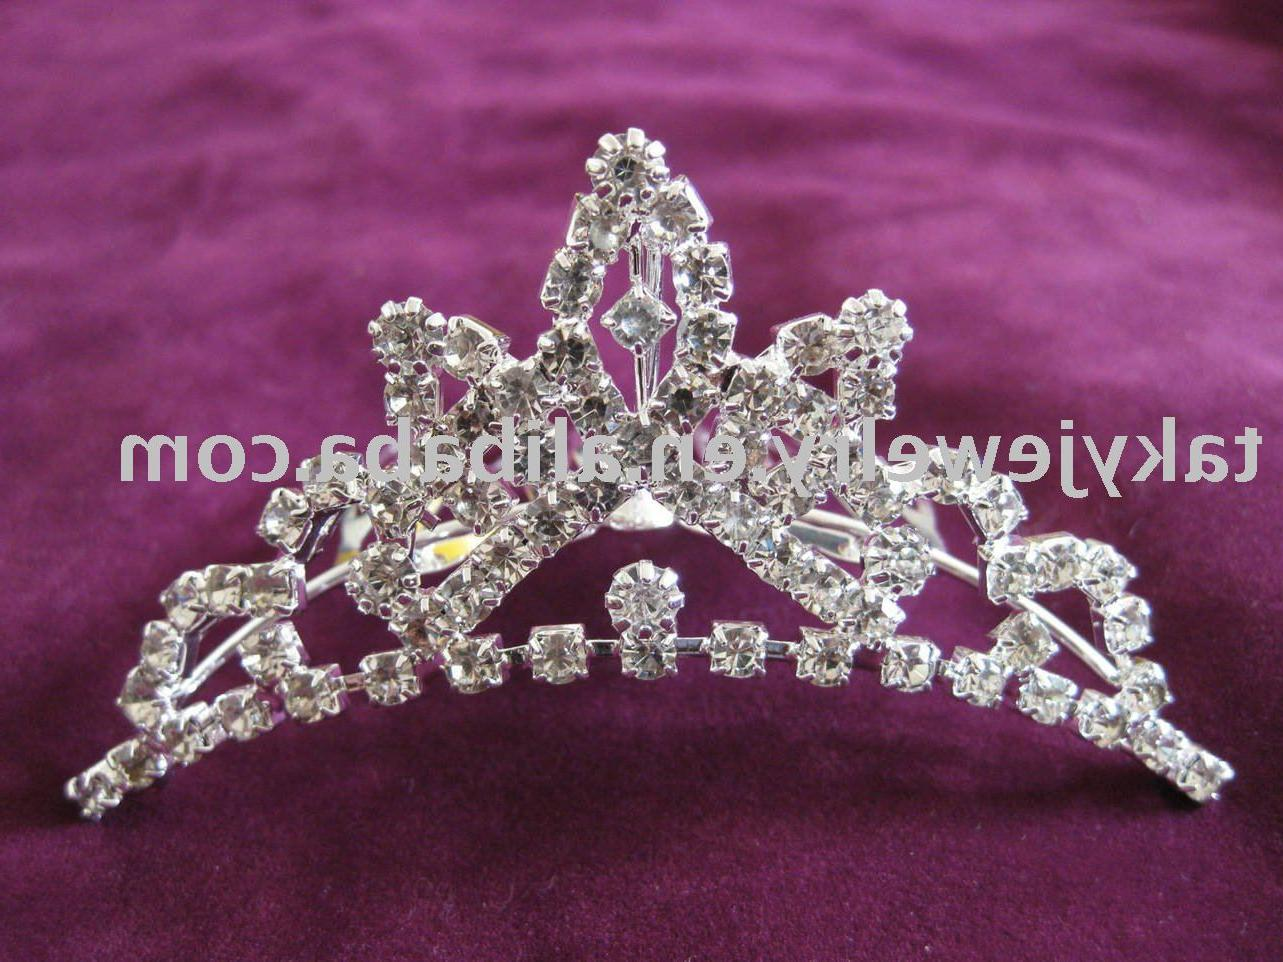 See larger image: princess tiara,party tiara,wedding tiara